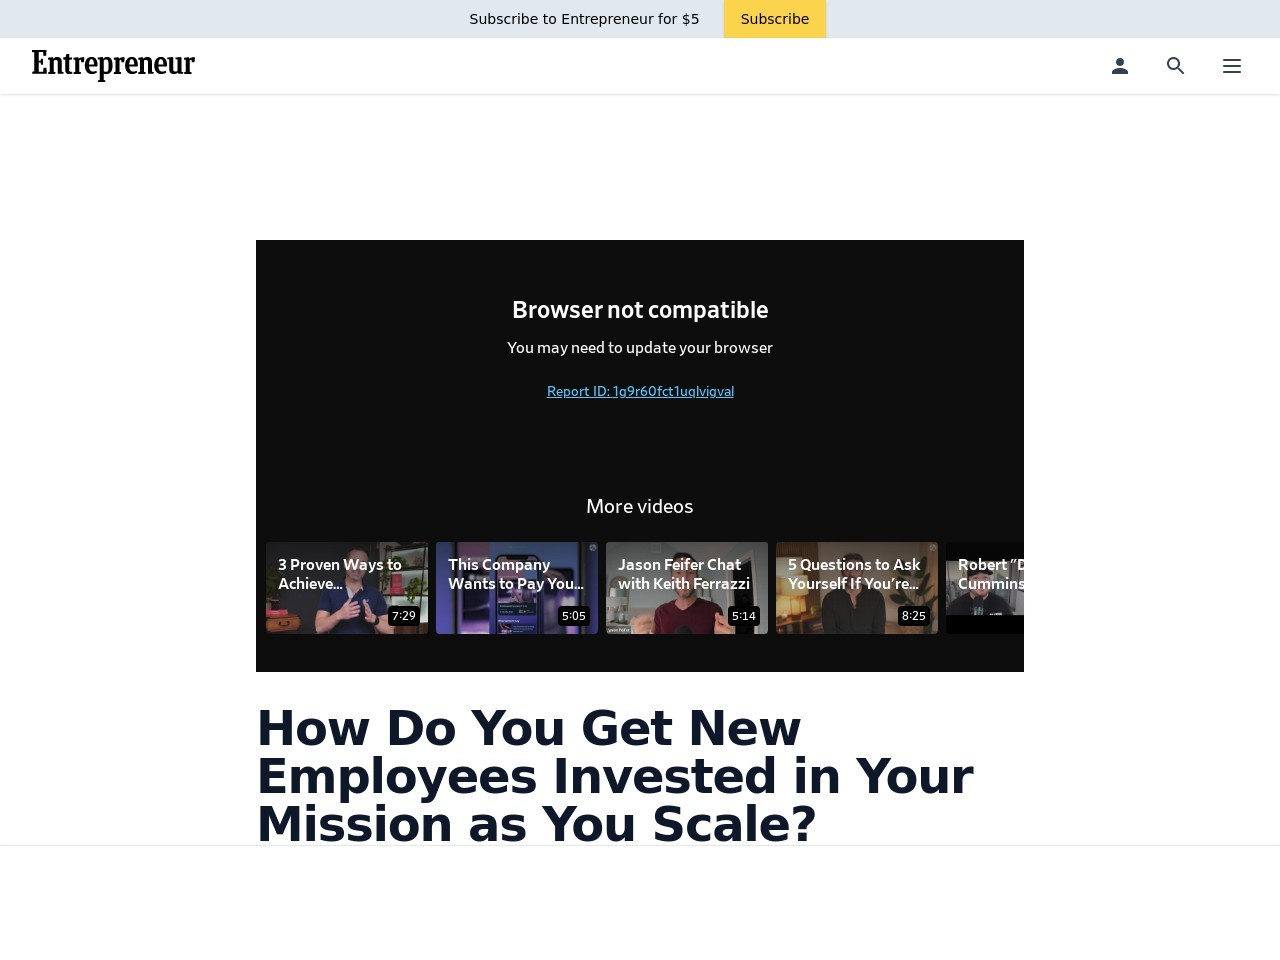 How Do You Get New Employees Invested in Your Mission as You Scale?